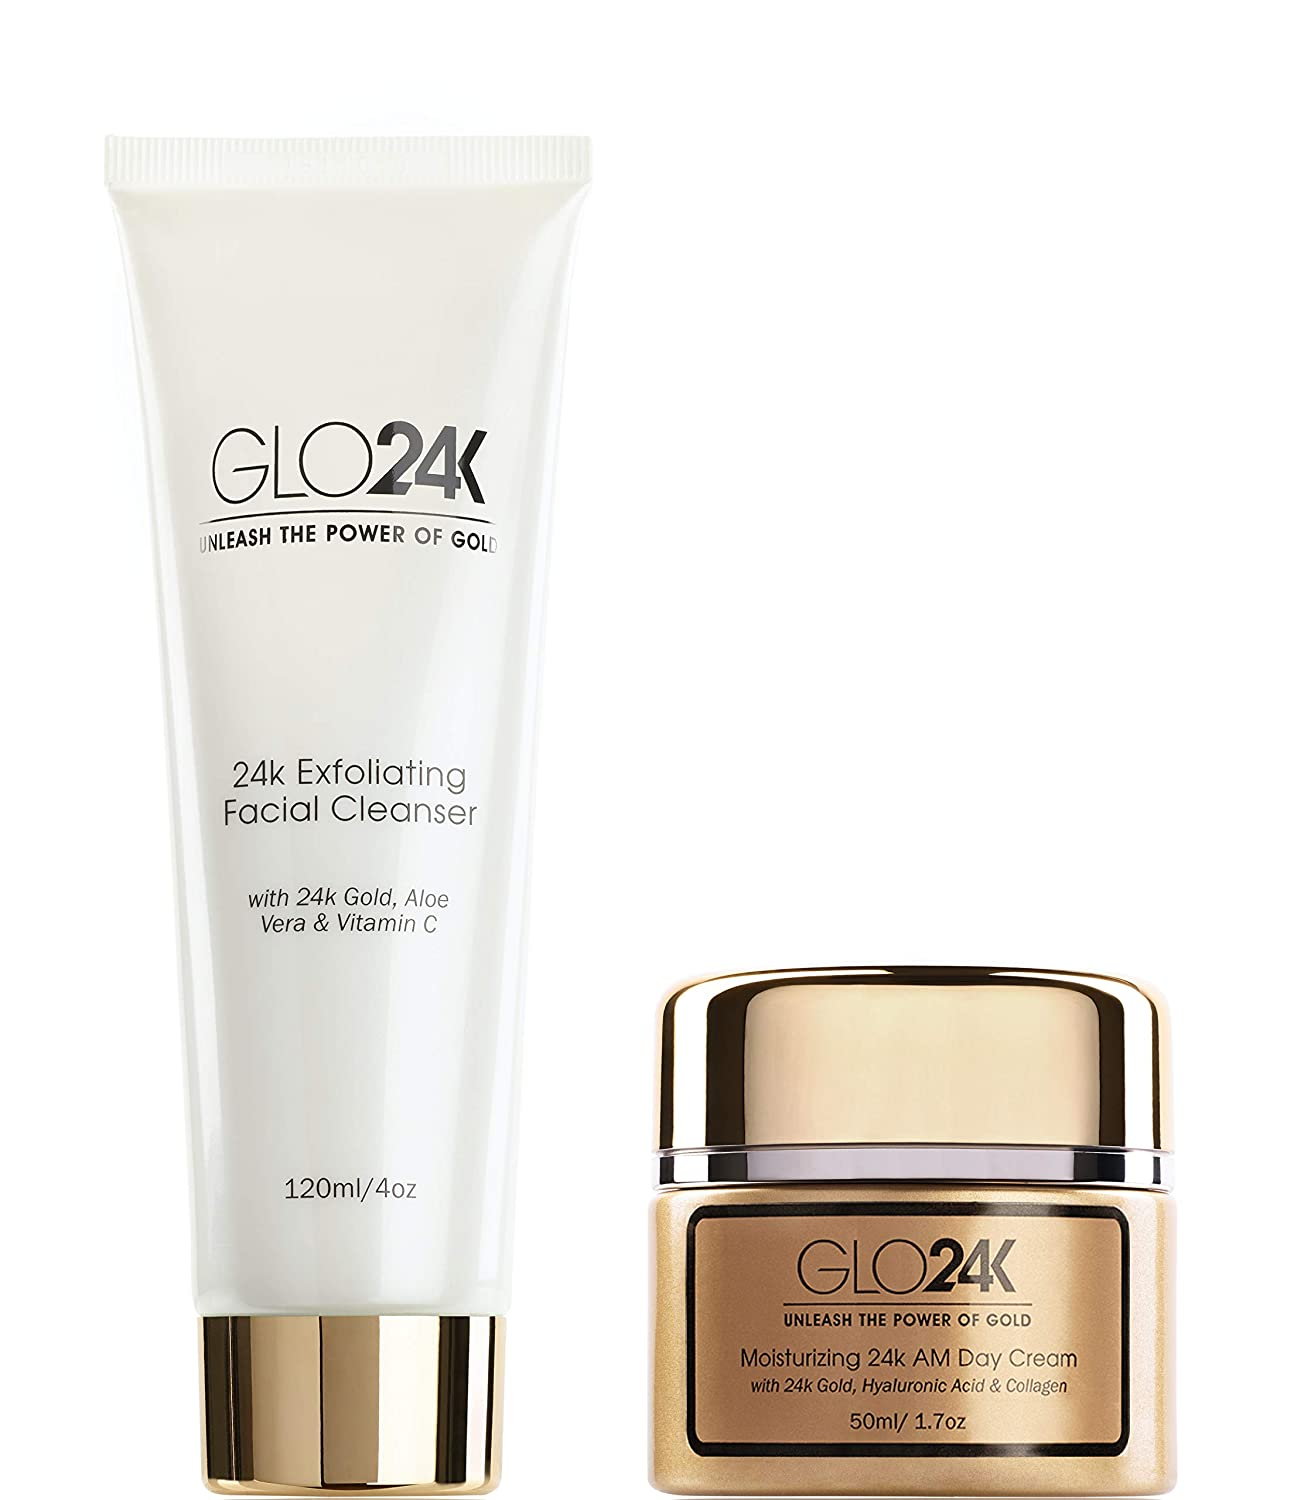 GLO24K Exfoliating Facial Cleanser & Day Cream with 24k Gold, Collagen, and Vitamins A,C,E. For a Radiant appearance and Fresh Looking Skin.